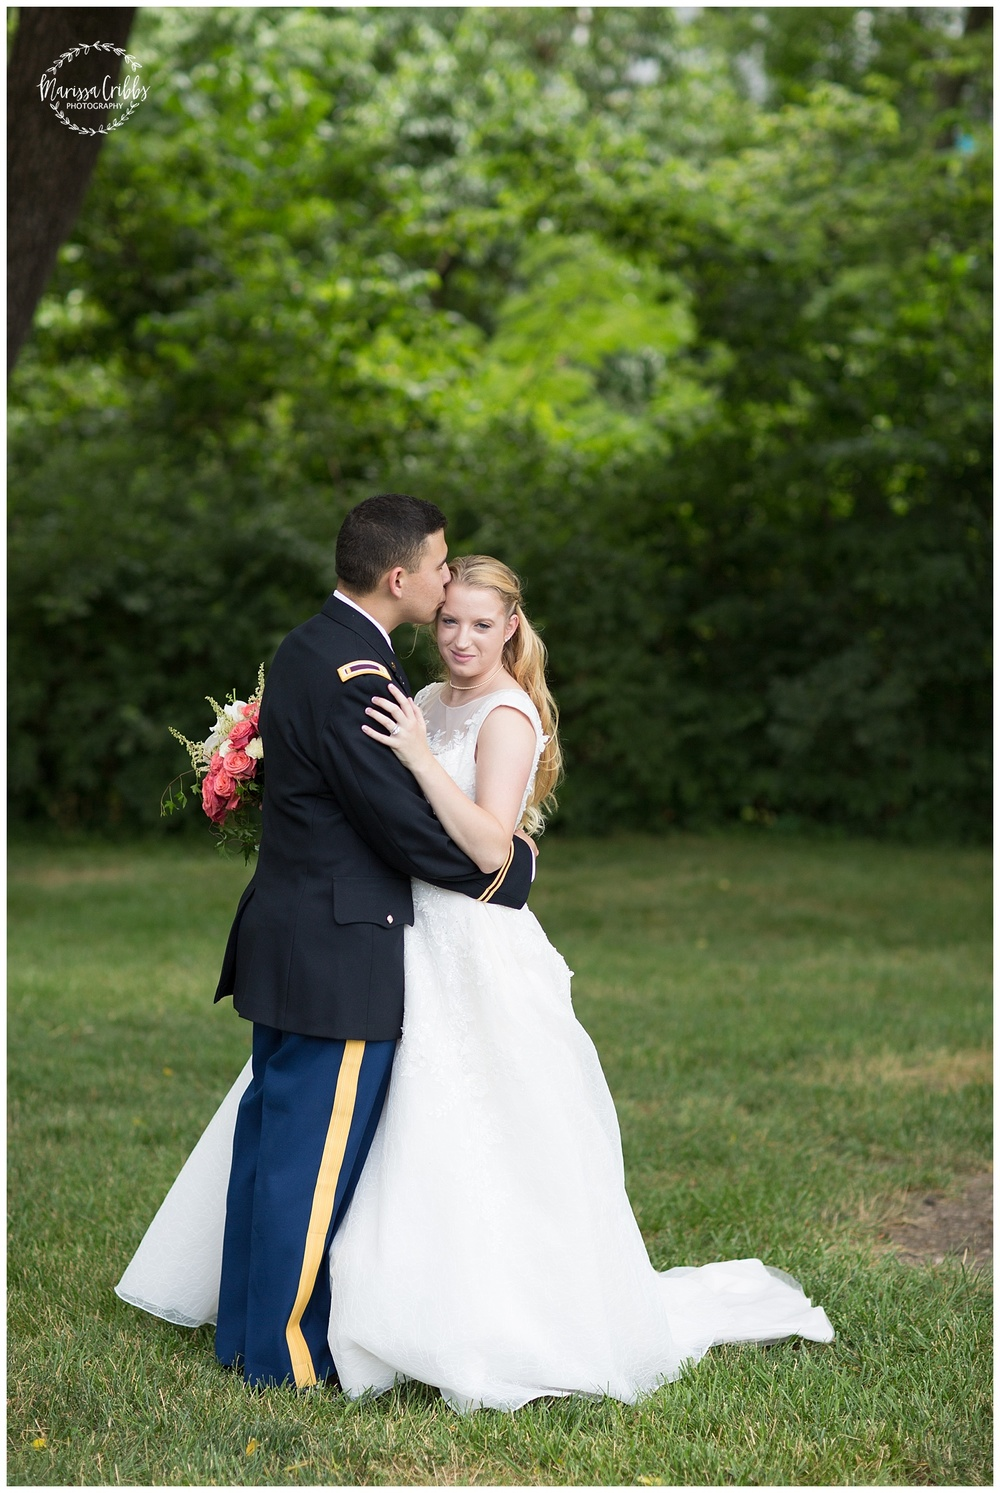 Jimenez Wedding | Marissa Cribbs Photography_0279.jpg